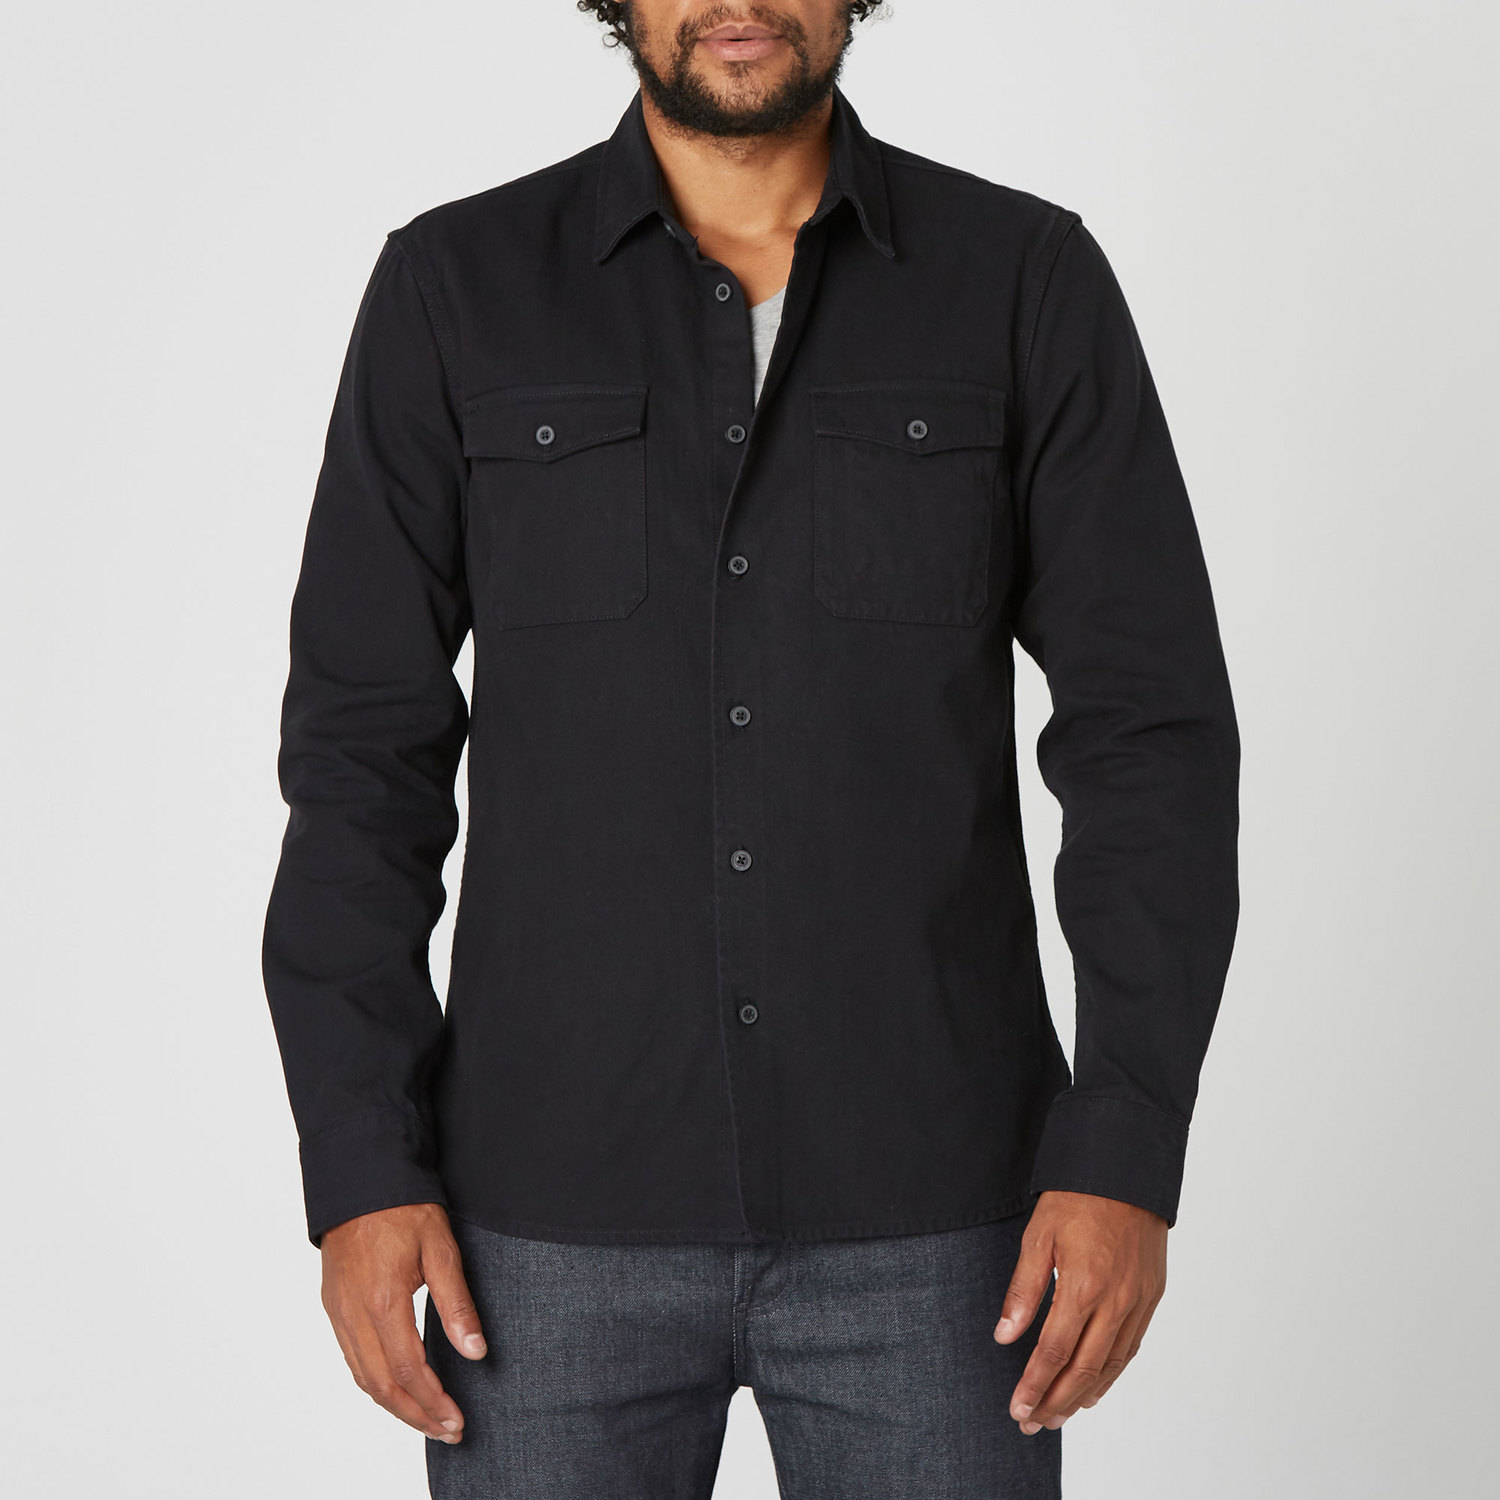 offer pretty and colorful men/man [Military Shirt] Mens Military Shirt Jacket in Black